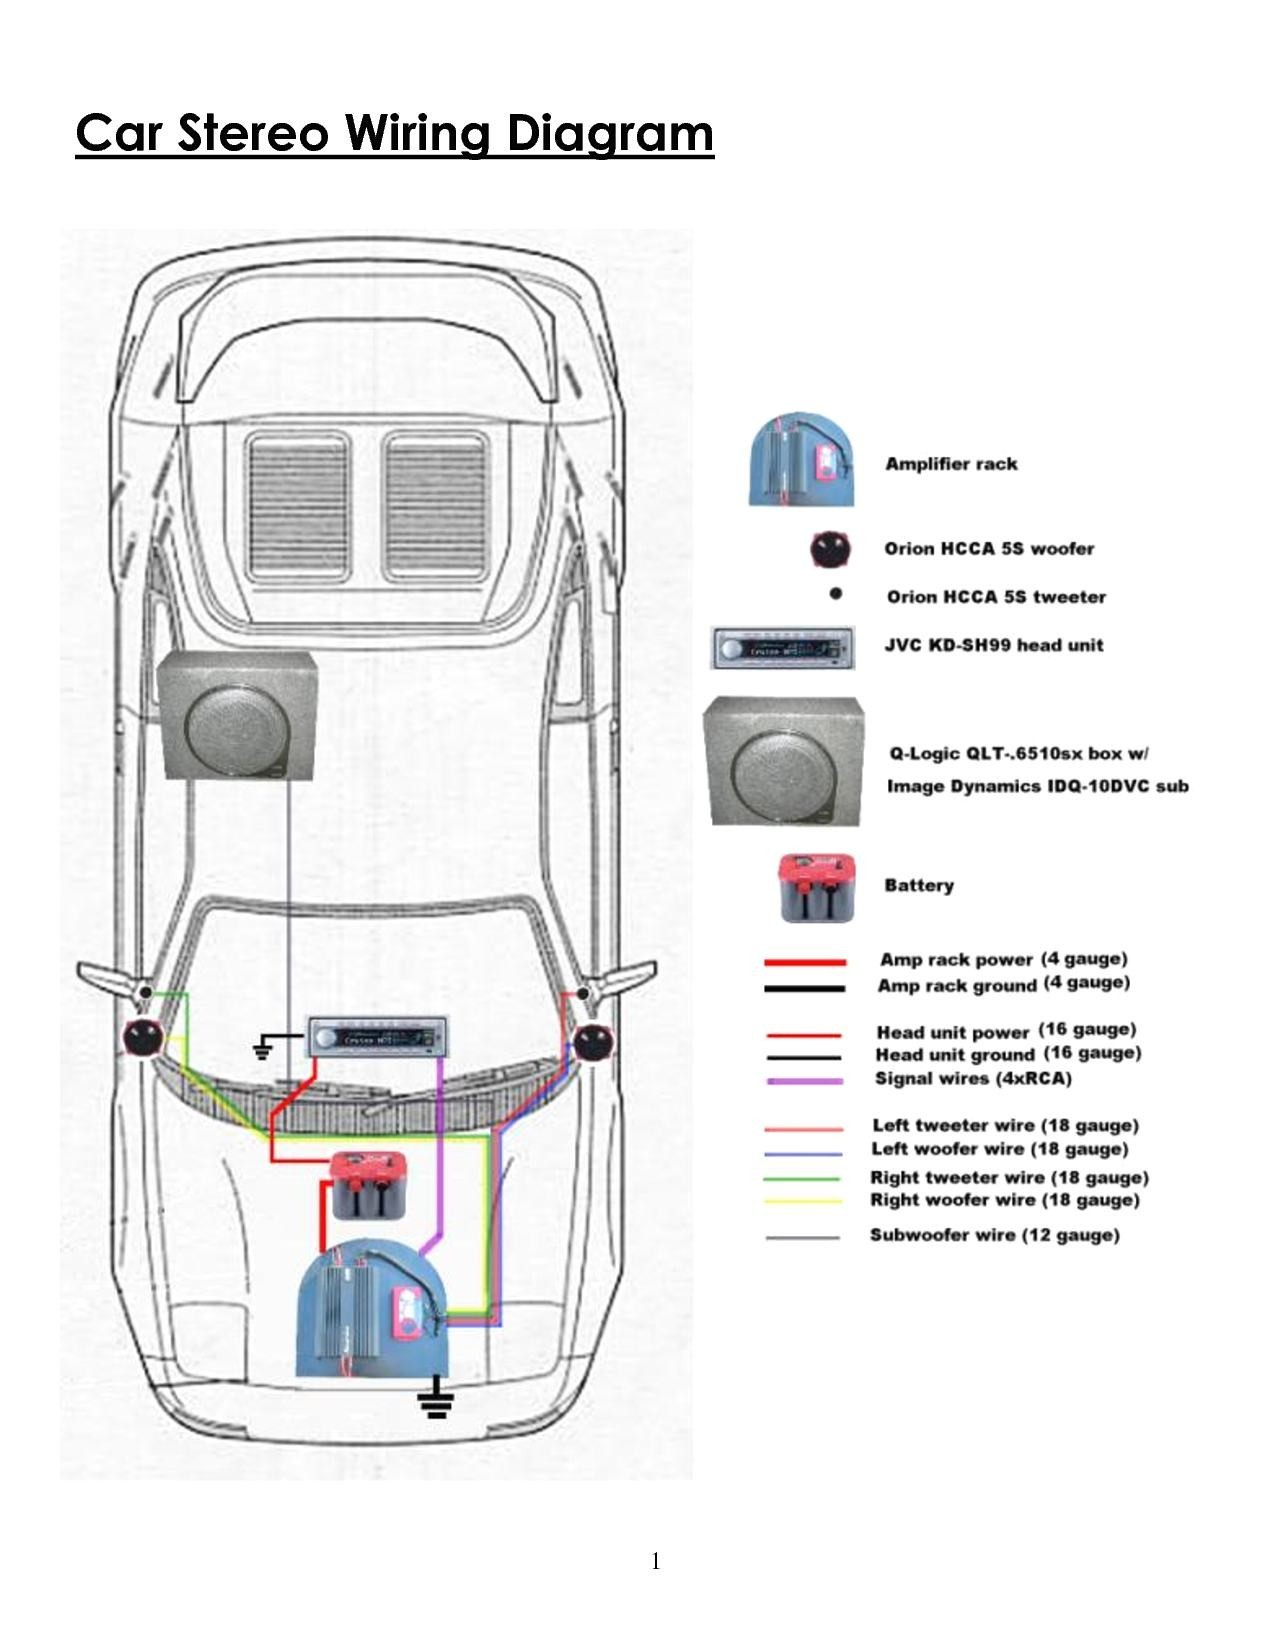 2007 Bmw X3 Car Stereo Wiring Diagram